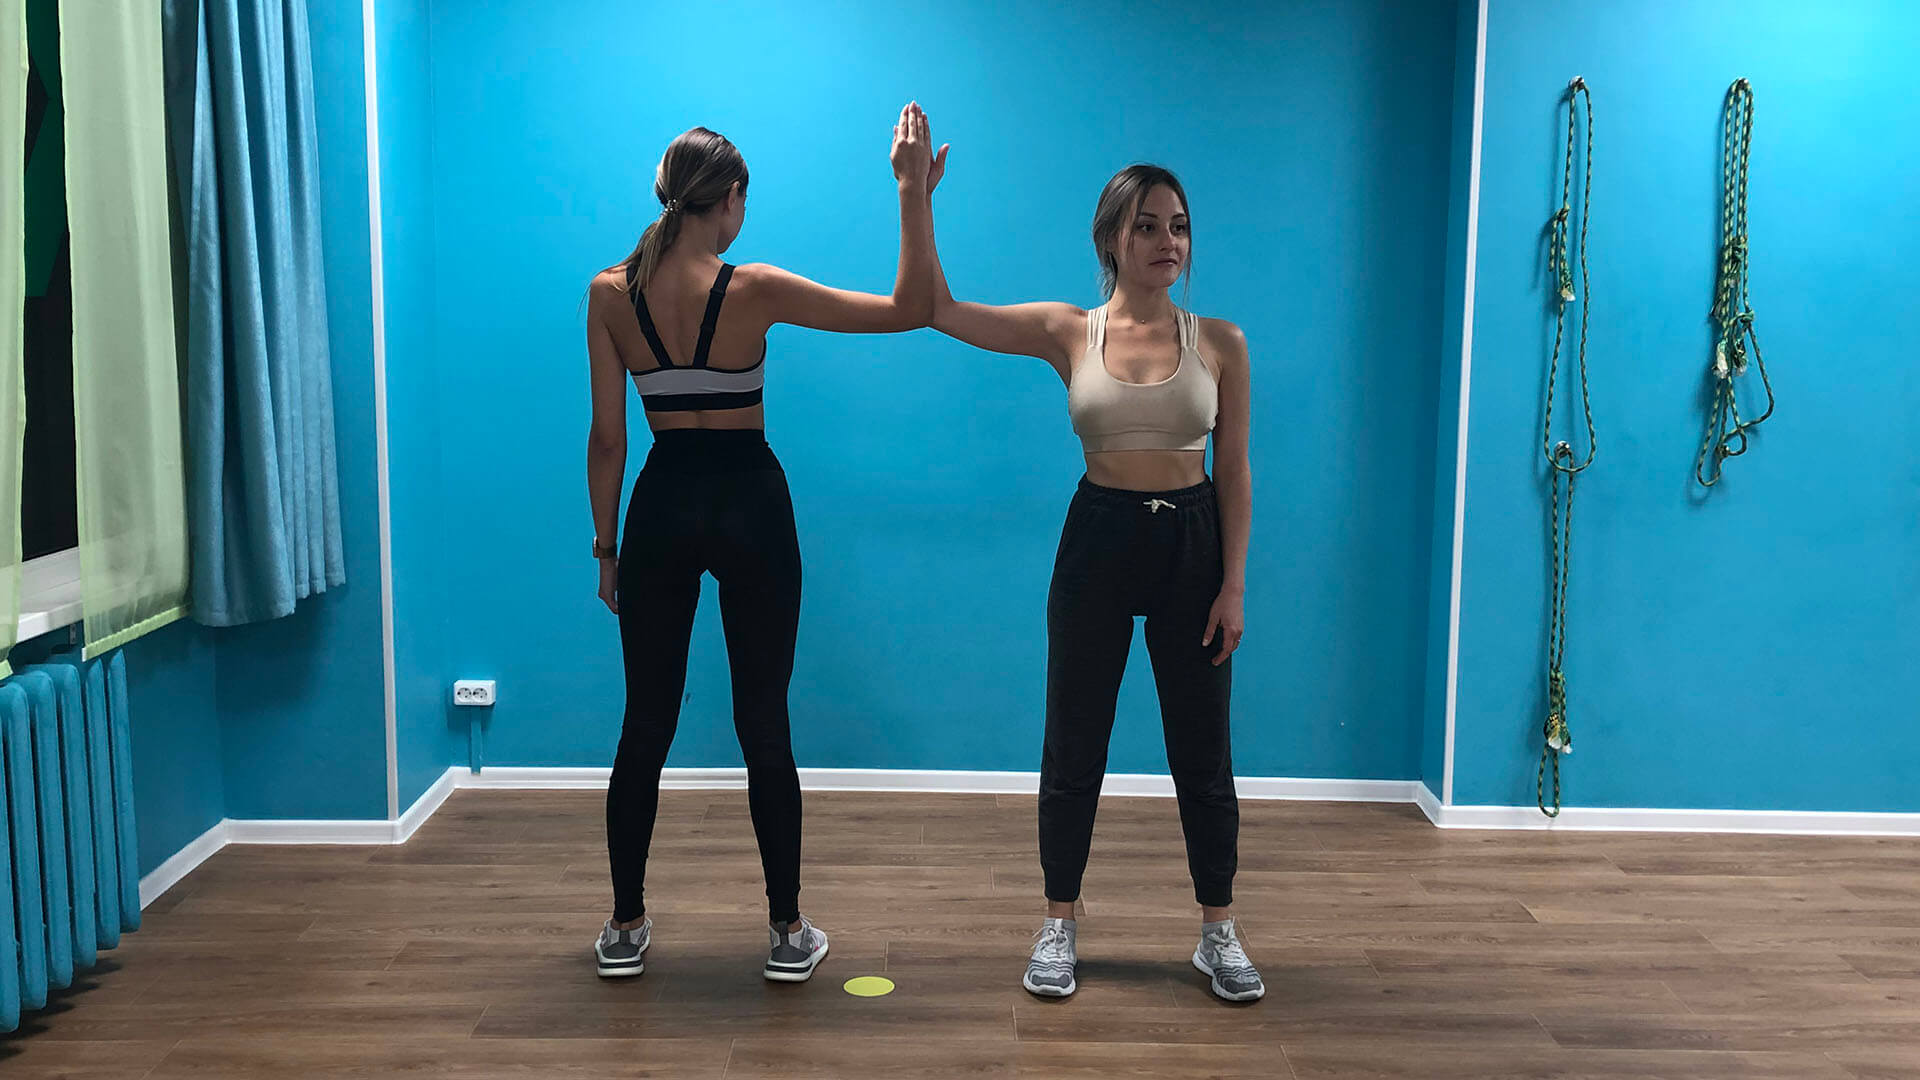 Stretching the pectoral muscles while standing: photo.